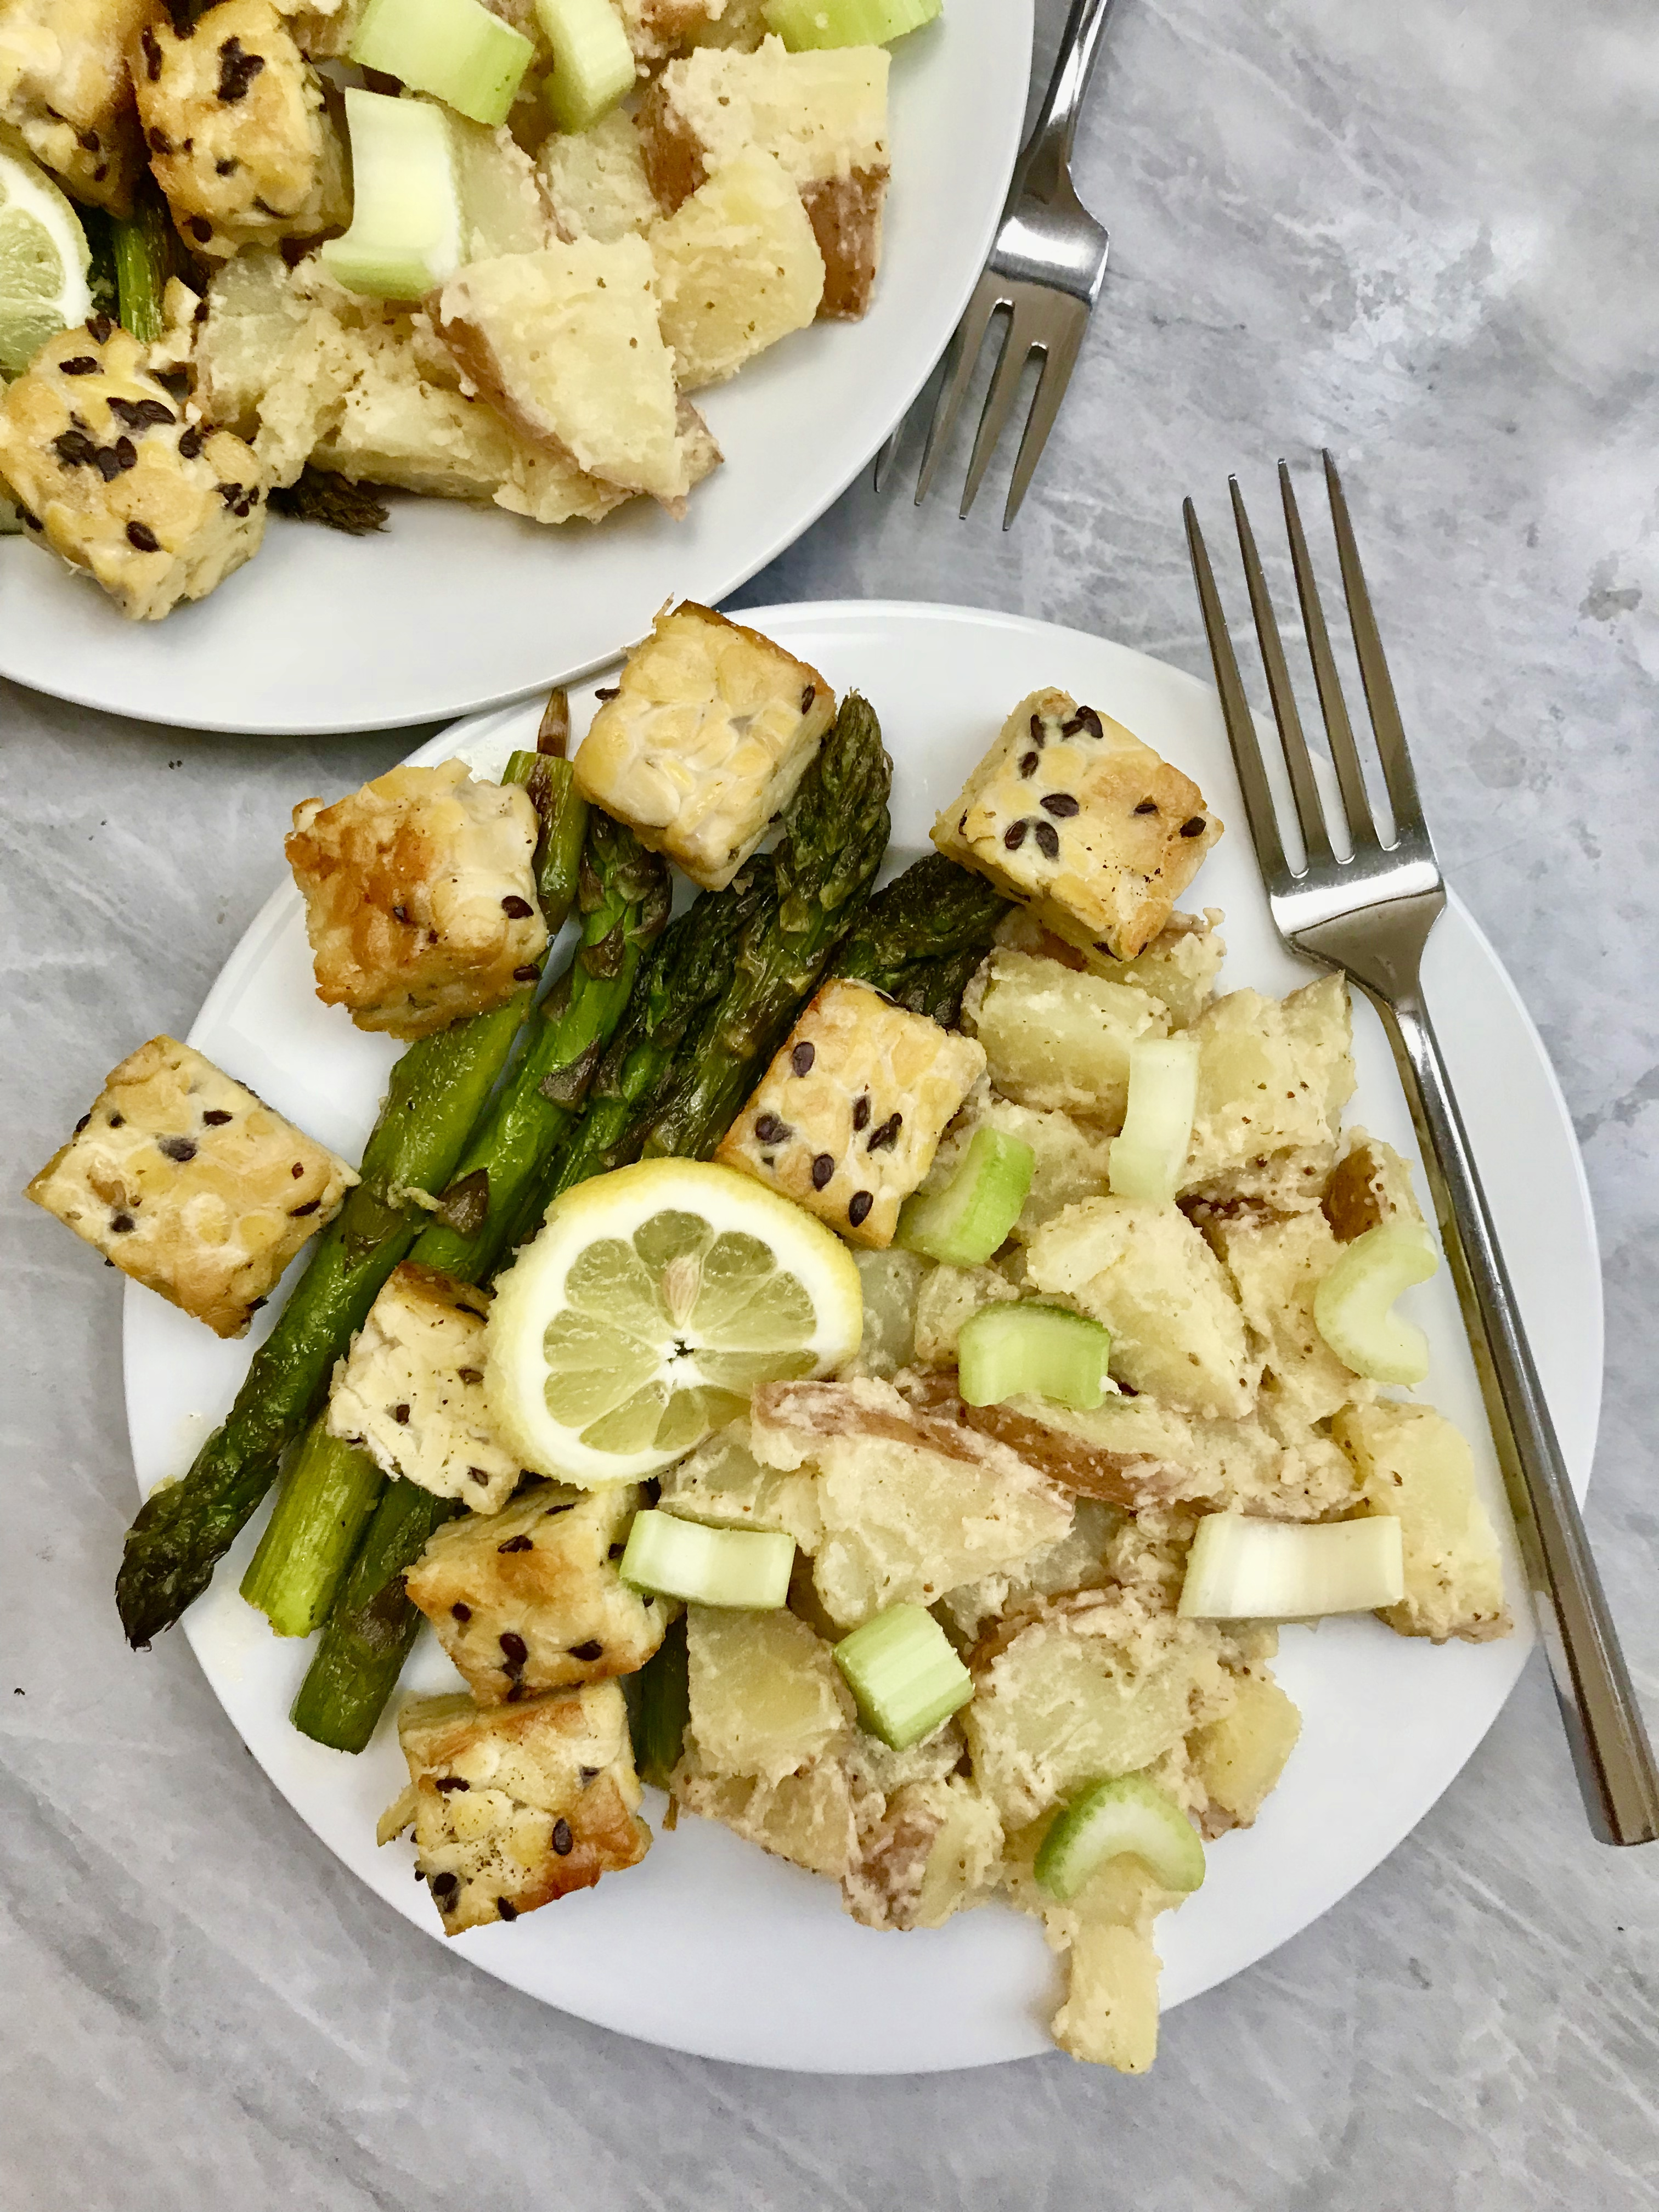 Warm Potato Salad With Roasted Asparagus, Mustard Vinaigrette & Tempeh Croutons